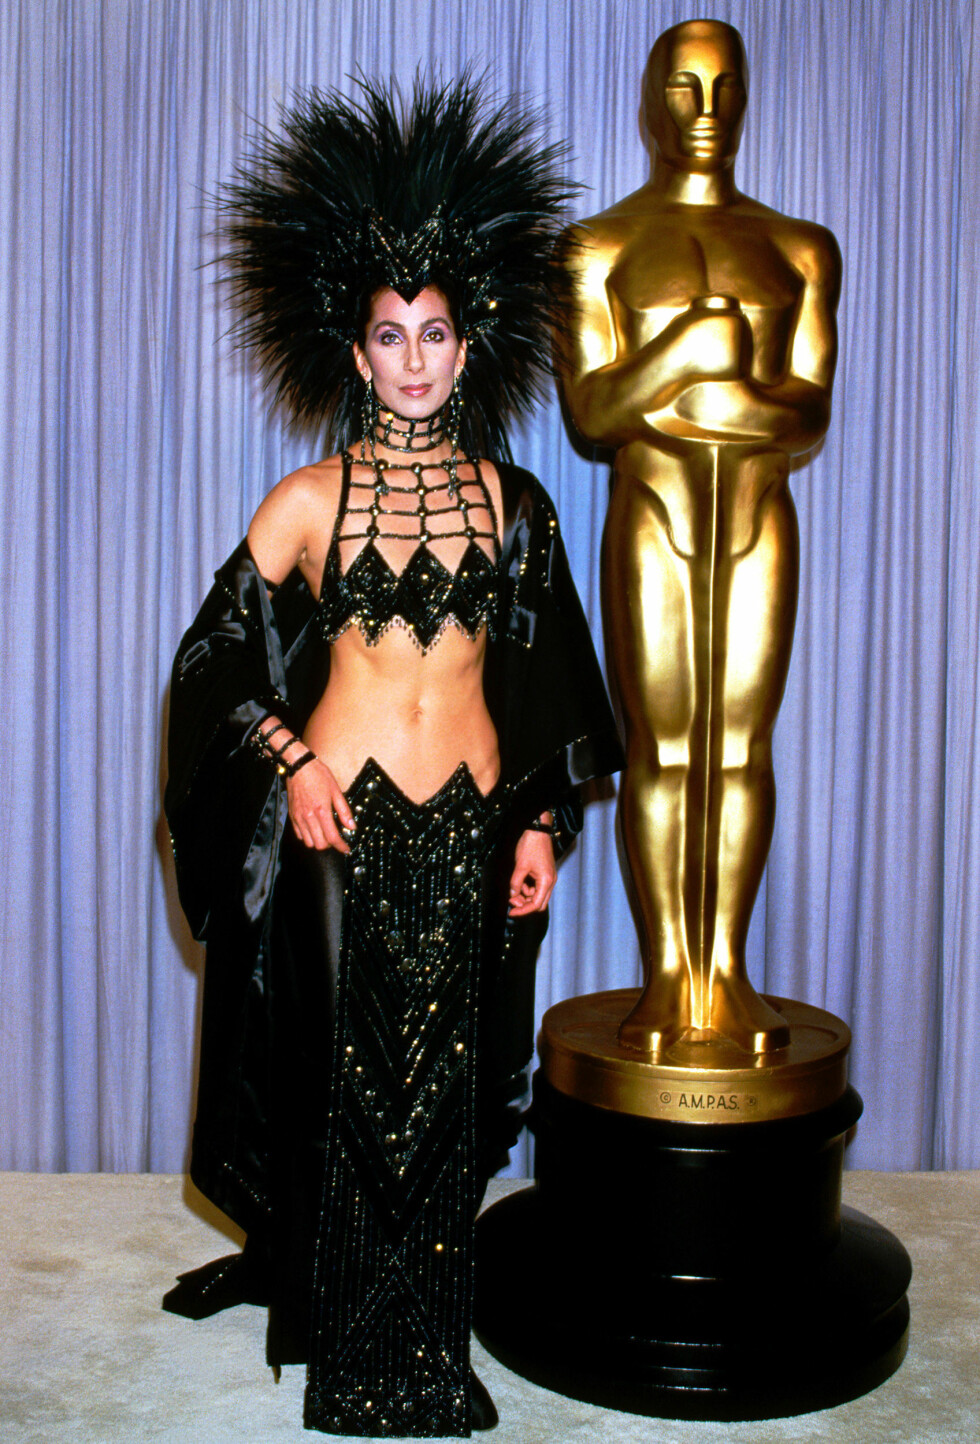 Cher Bono at the 58th Annual Academy Awards, 1986    Photo by Picturelux/insight media Foto: insight media/All Over Press